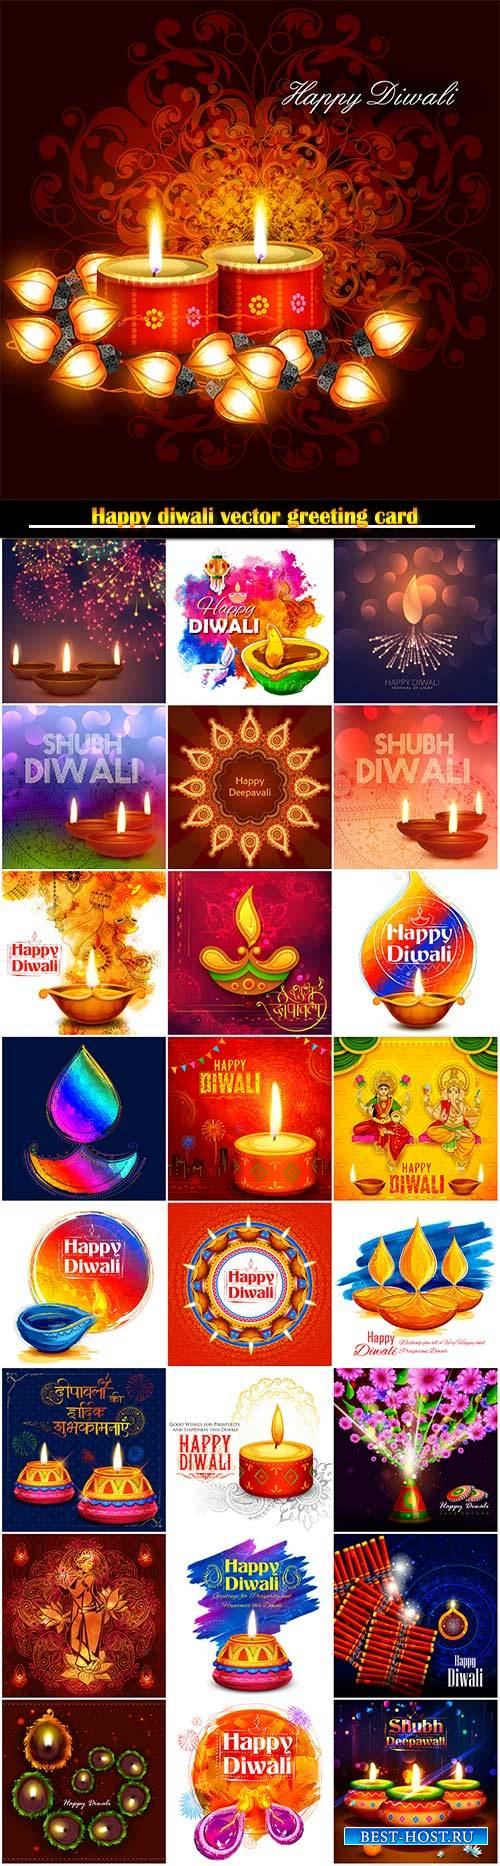 Happy diwali vector greeting card